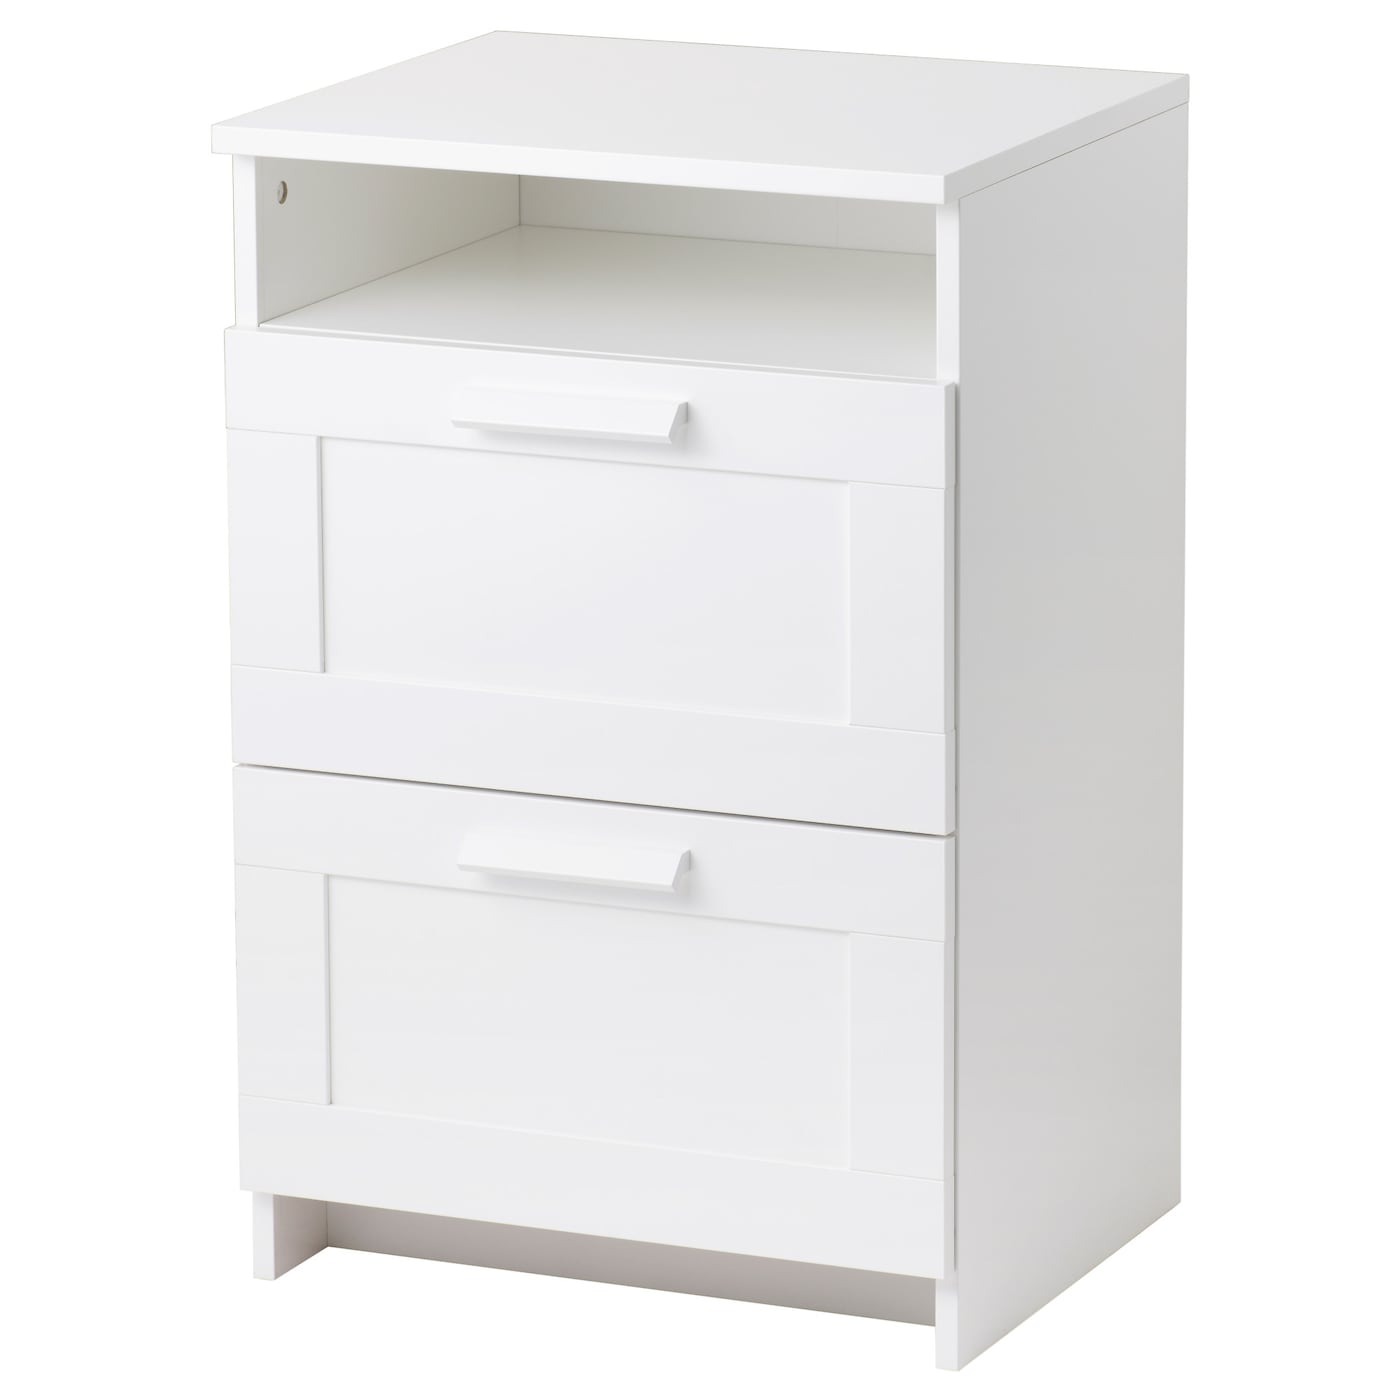 Brimnes Dressing Table White 70x42 Cm Ikea